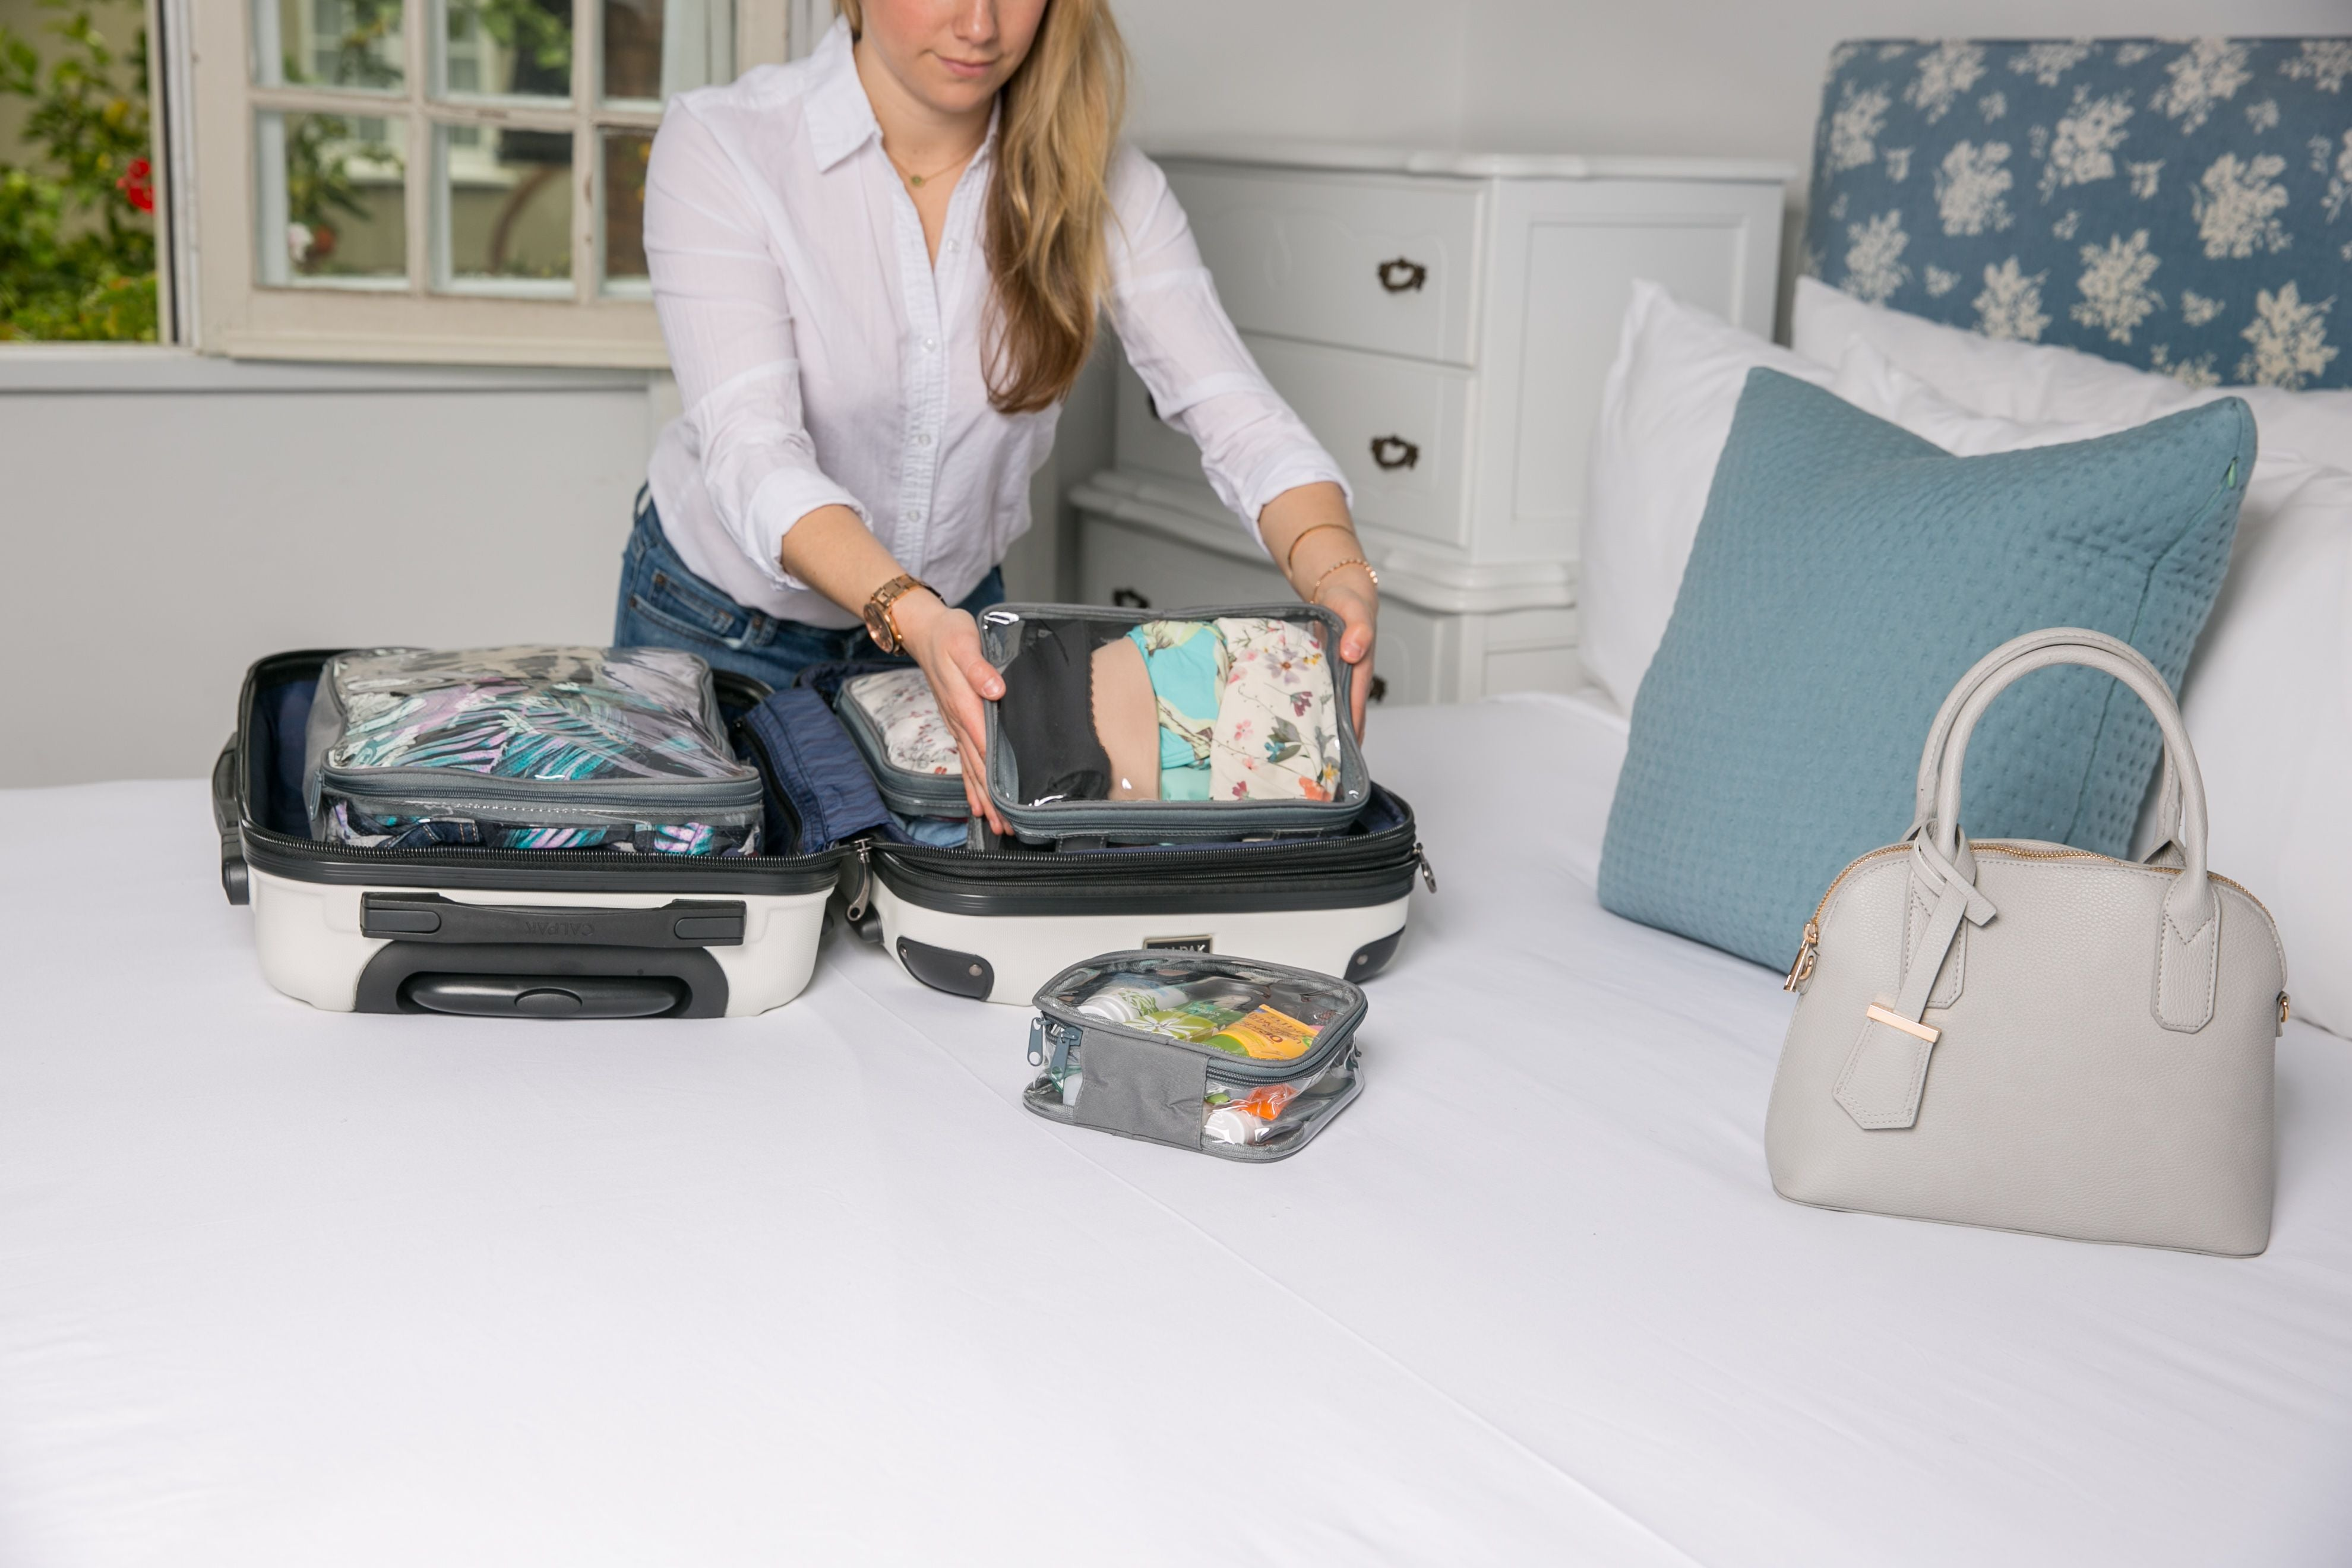 Tali packing starter set cubes in a carry on suitcase